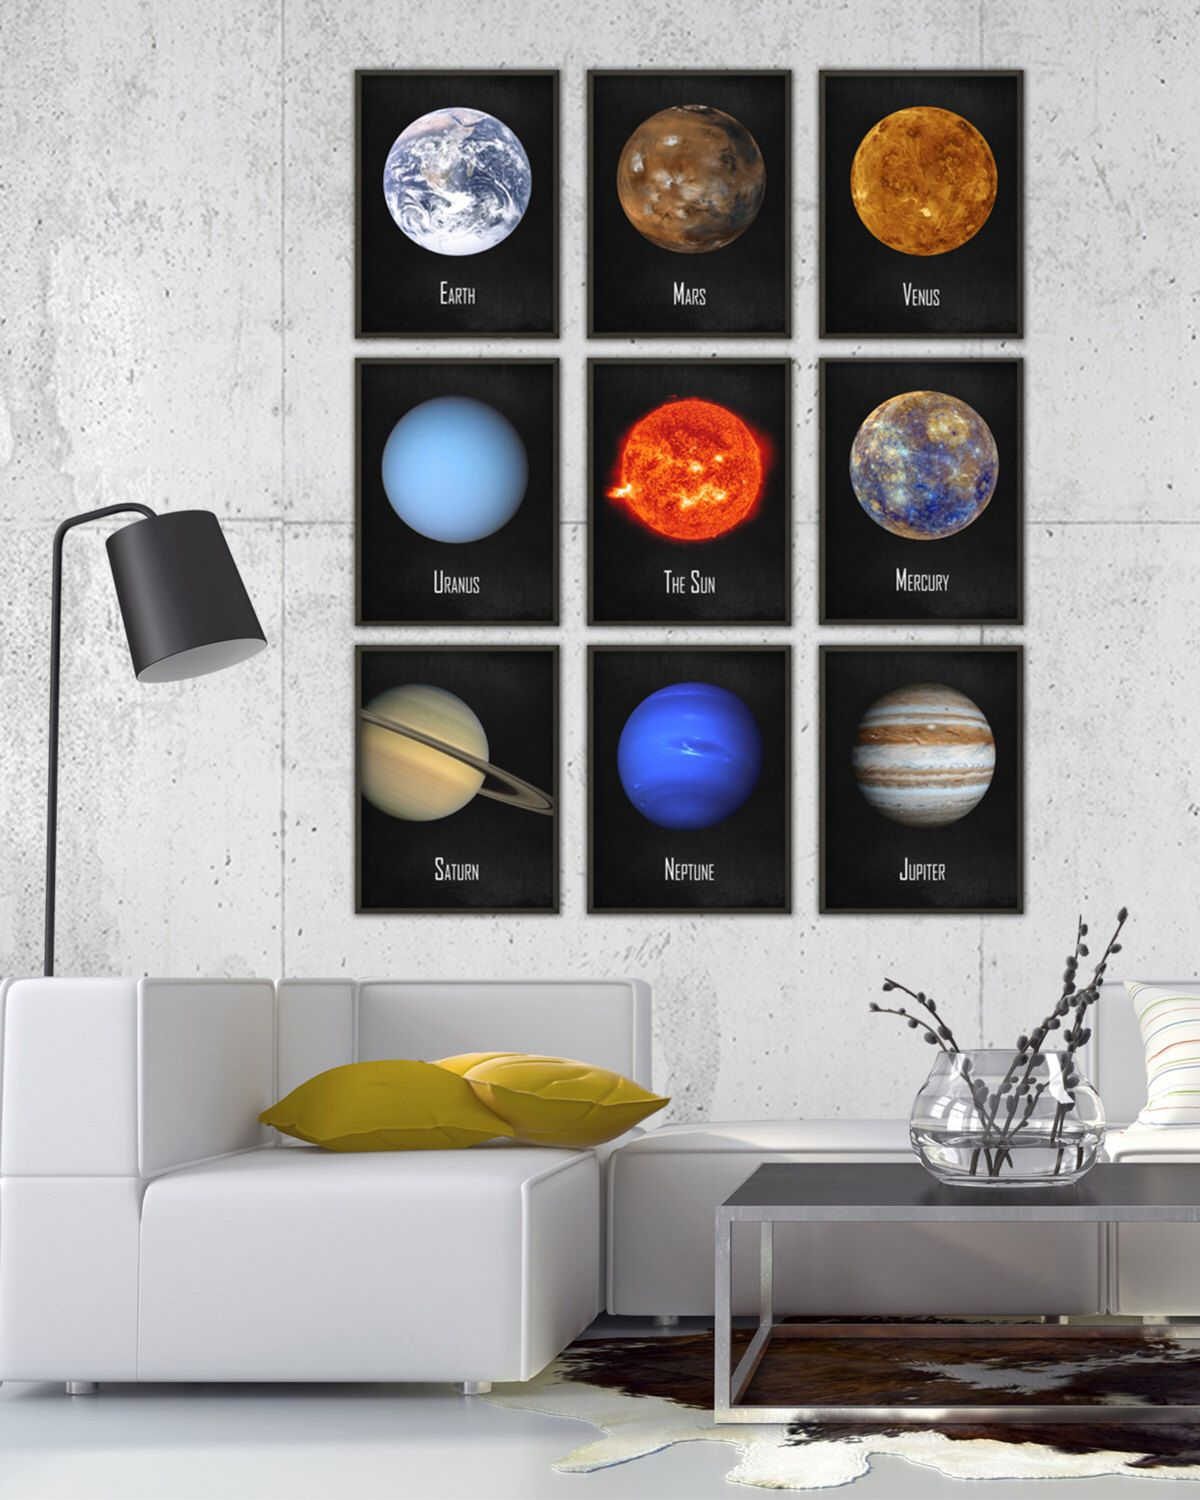 The Solar System Wall Art Poster Set of 9 - NASA Astronomy Prints ...